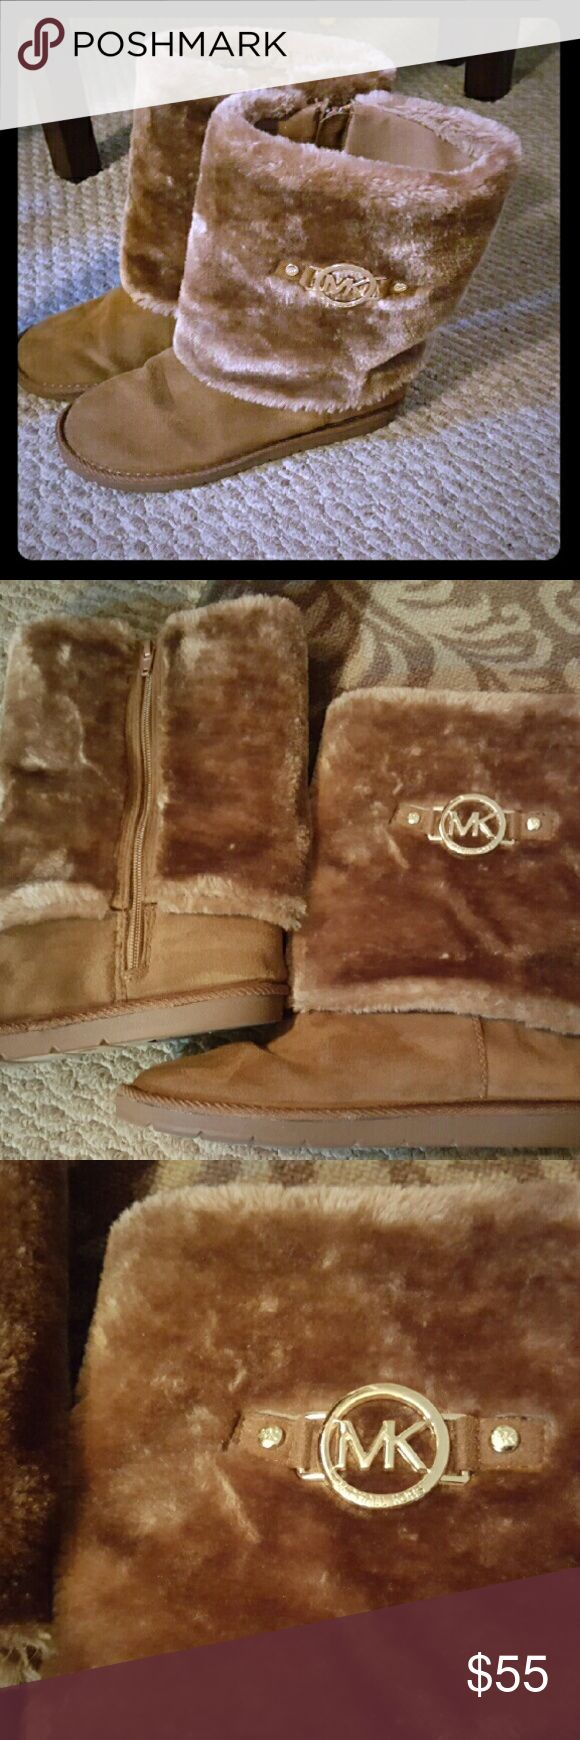 Very cute mk light brown boots. Light brown mk boots, absolutely cute???? mk Shoes Ankle Boots & Booties